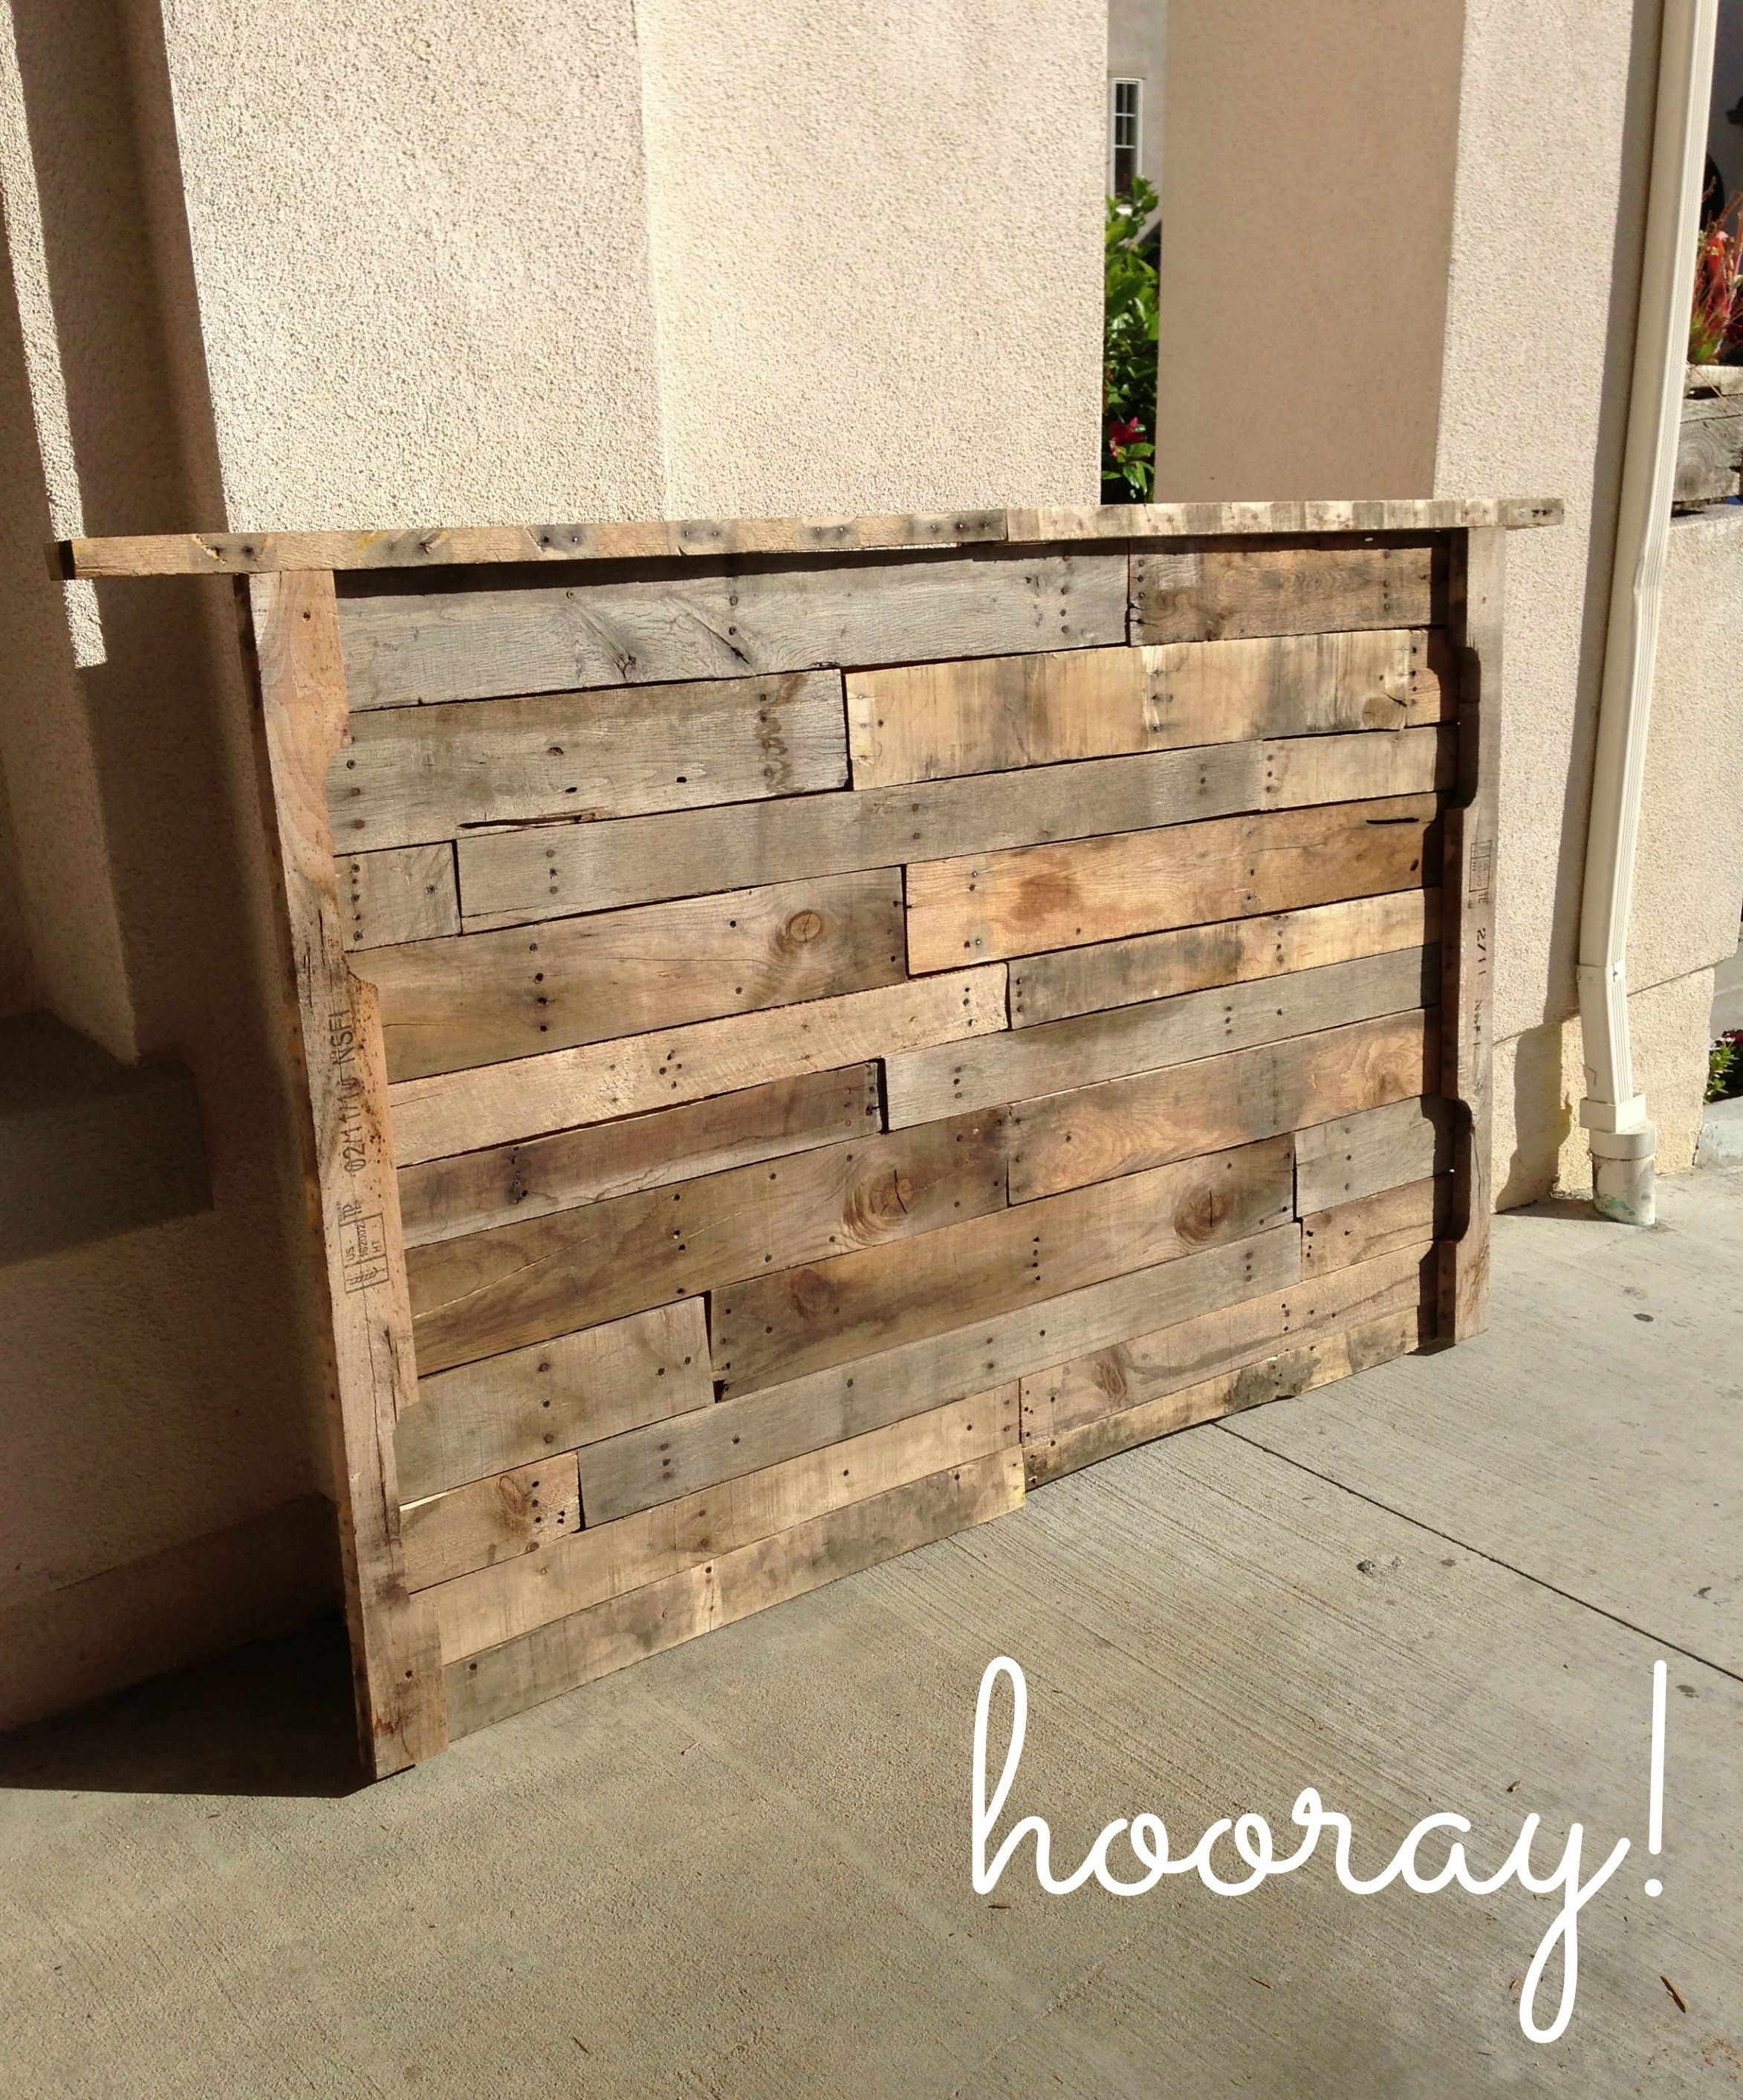 Pallet furniture designs handmade wood furniture ideas handmade wood - When Remodeling Our Master Bedroom Earlier This Year We Knew We Wanted To Break Up Driftwood Headboardwood Pallet